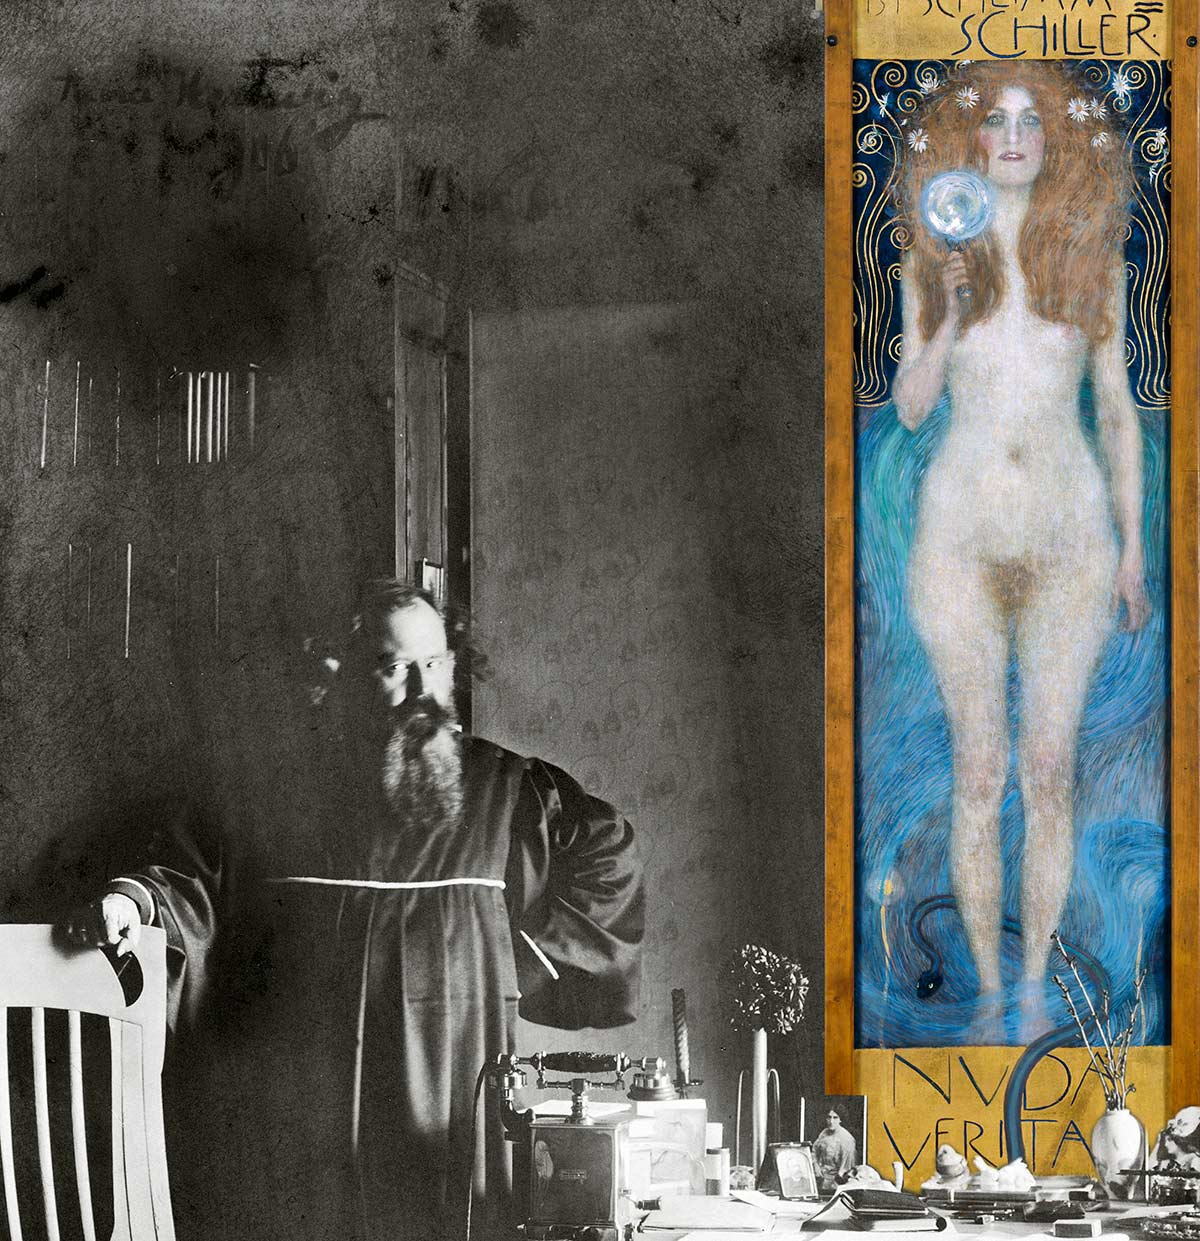 """Aura Hertwig, The writer Hermann Bahr, first owner of Klimt's """"Nuda Veritas"""", with this painting in his study, Vienna-Ober Sankt Veit (detail), ca. 1905"""